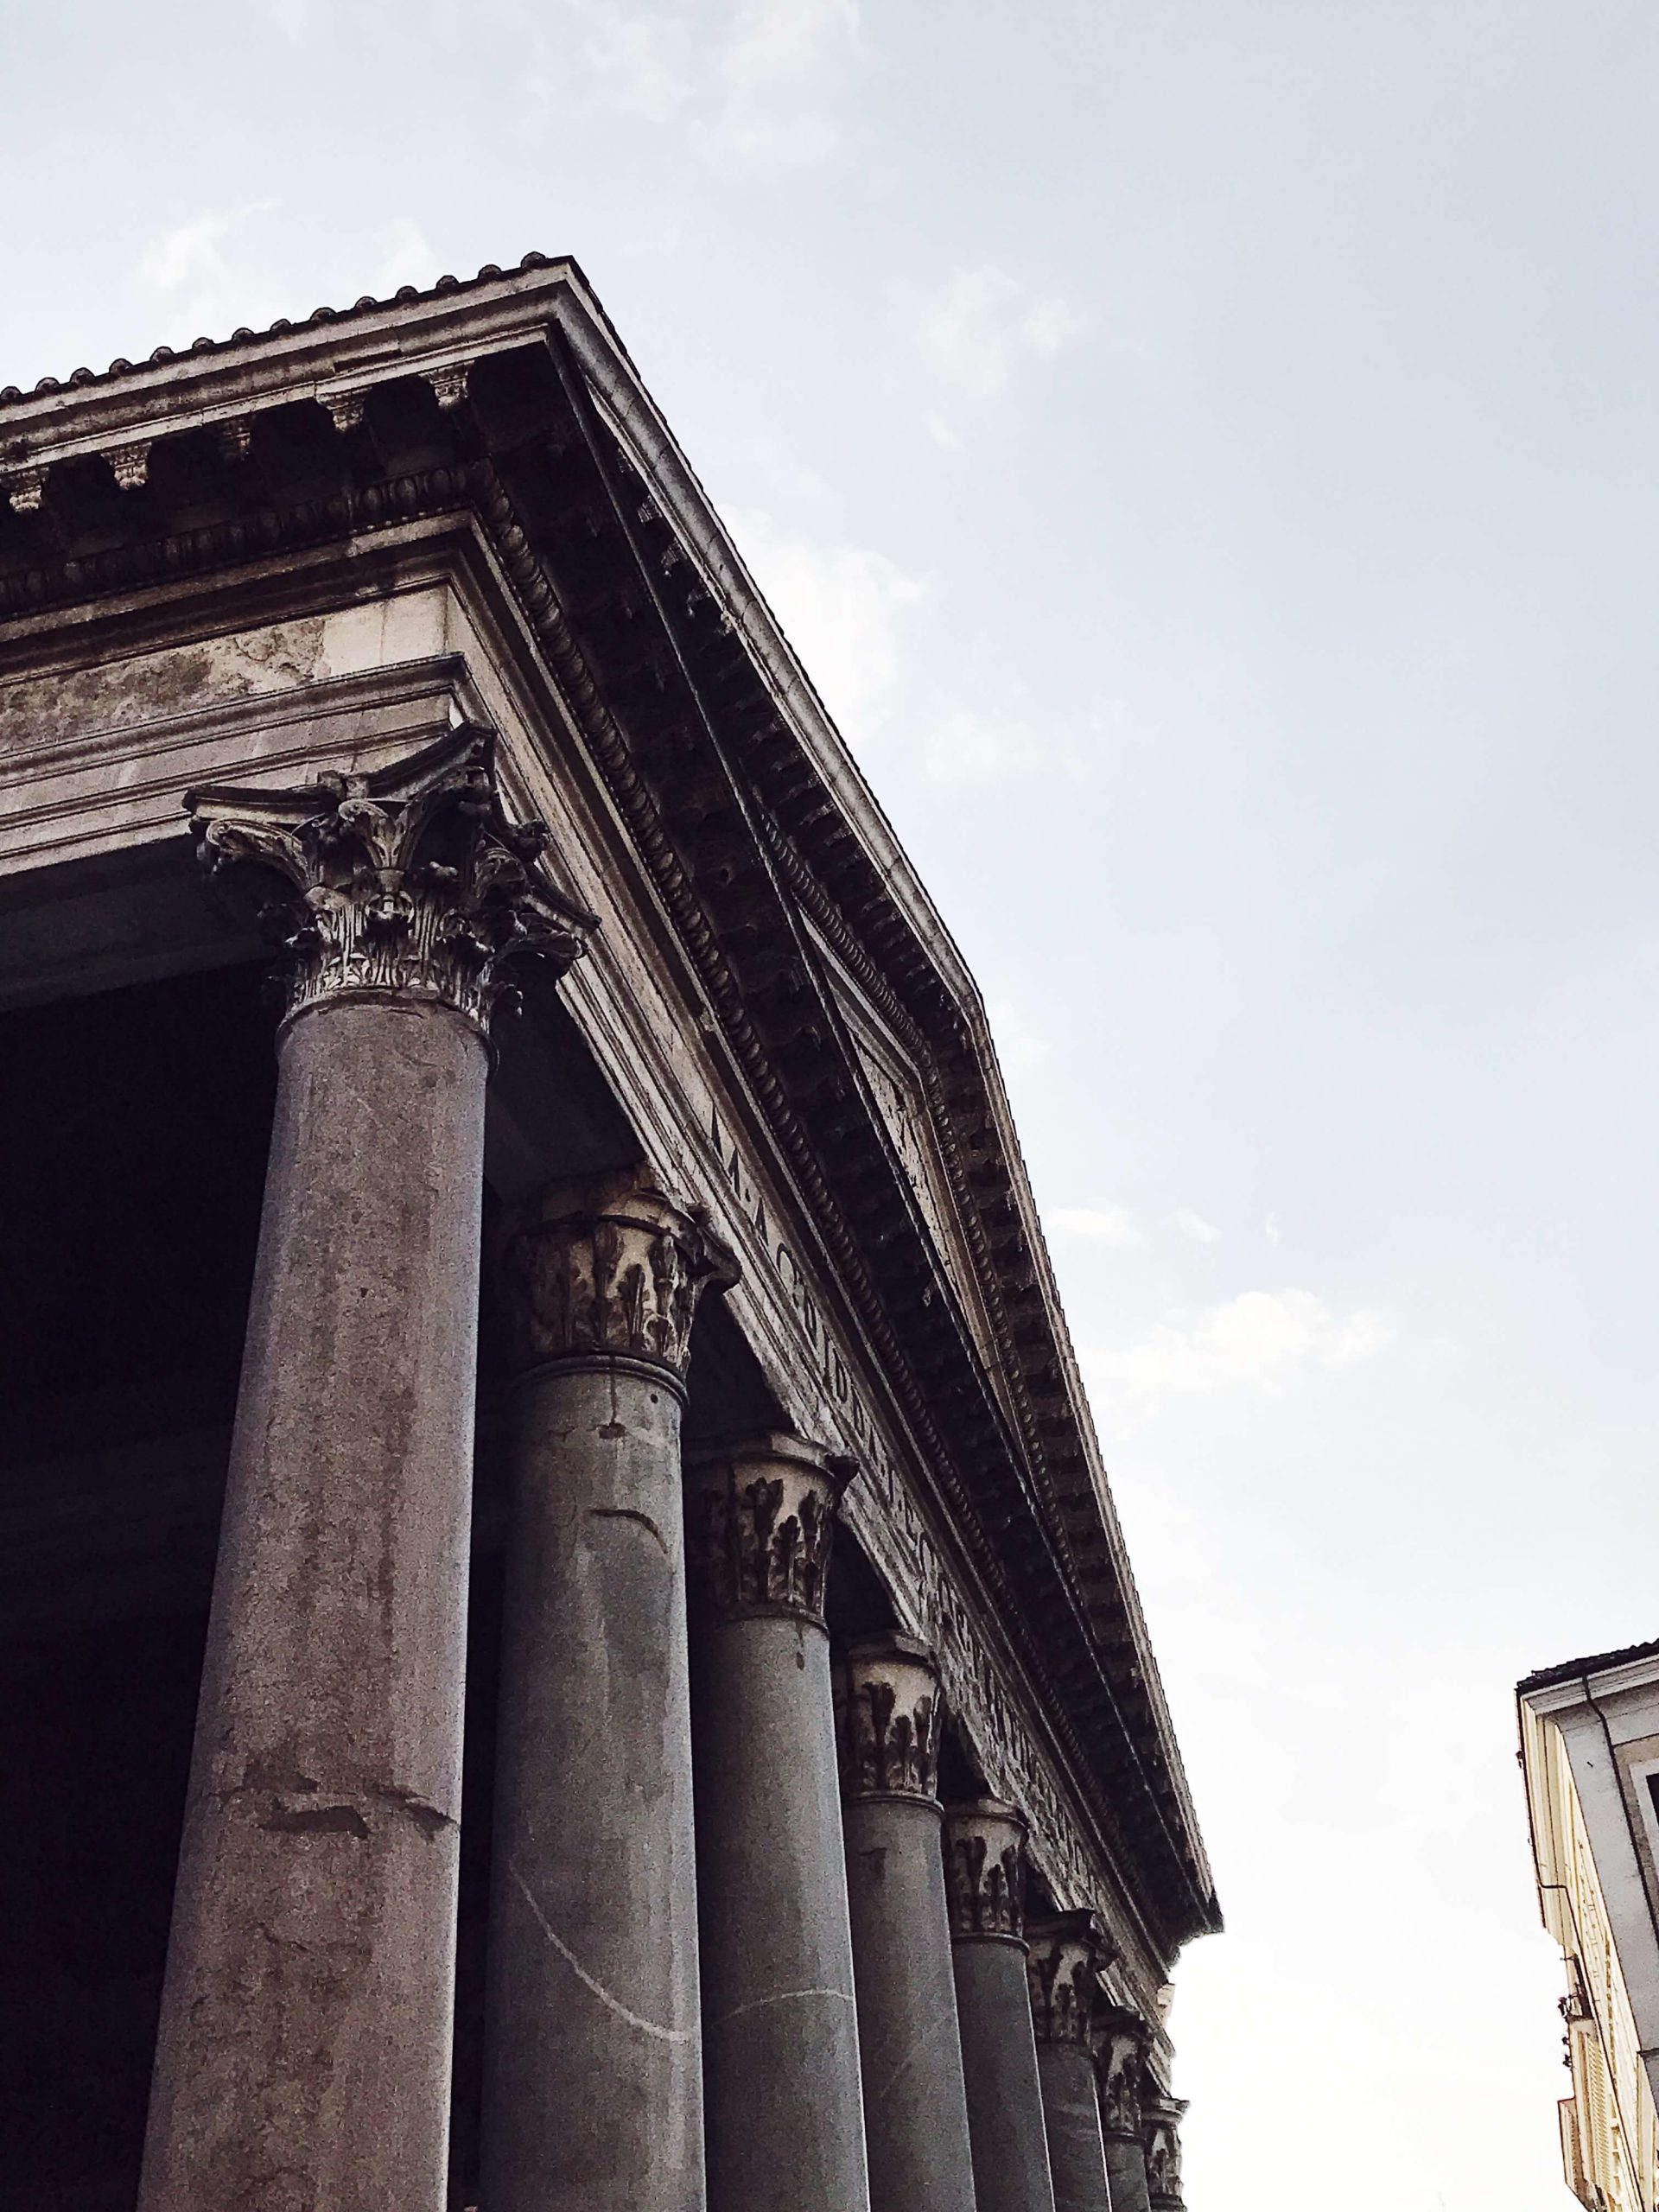 Rome in pictures: pantheon's columns